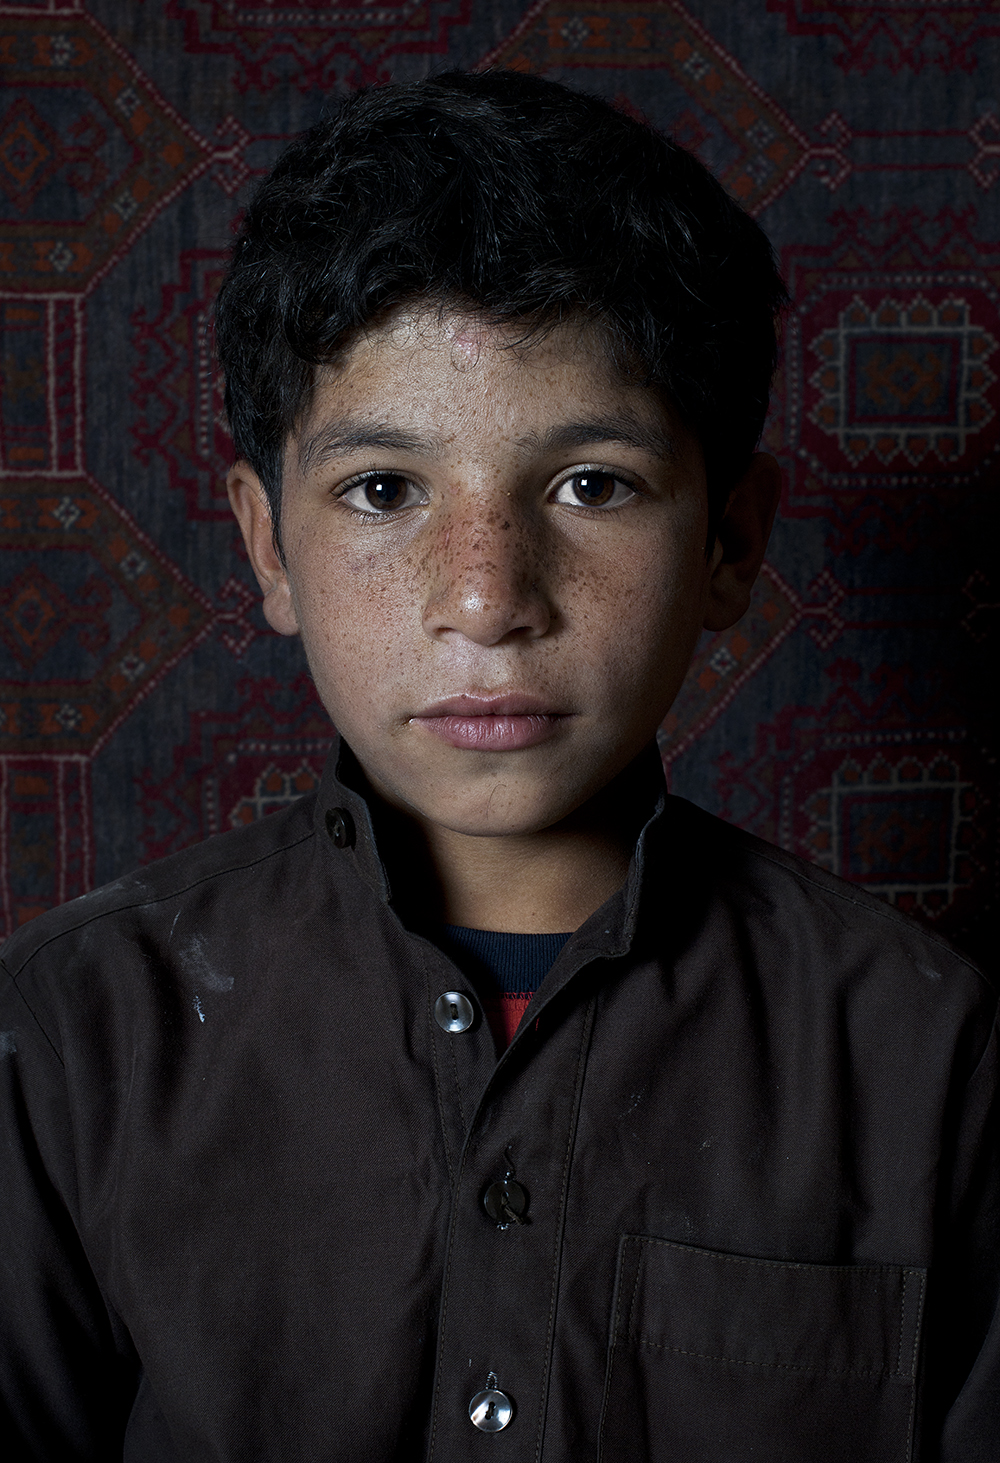 Faces of Kabul Bald Lessing